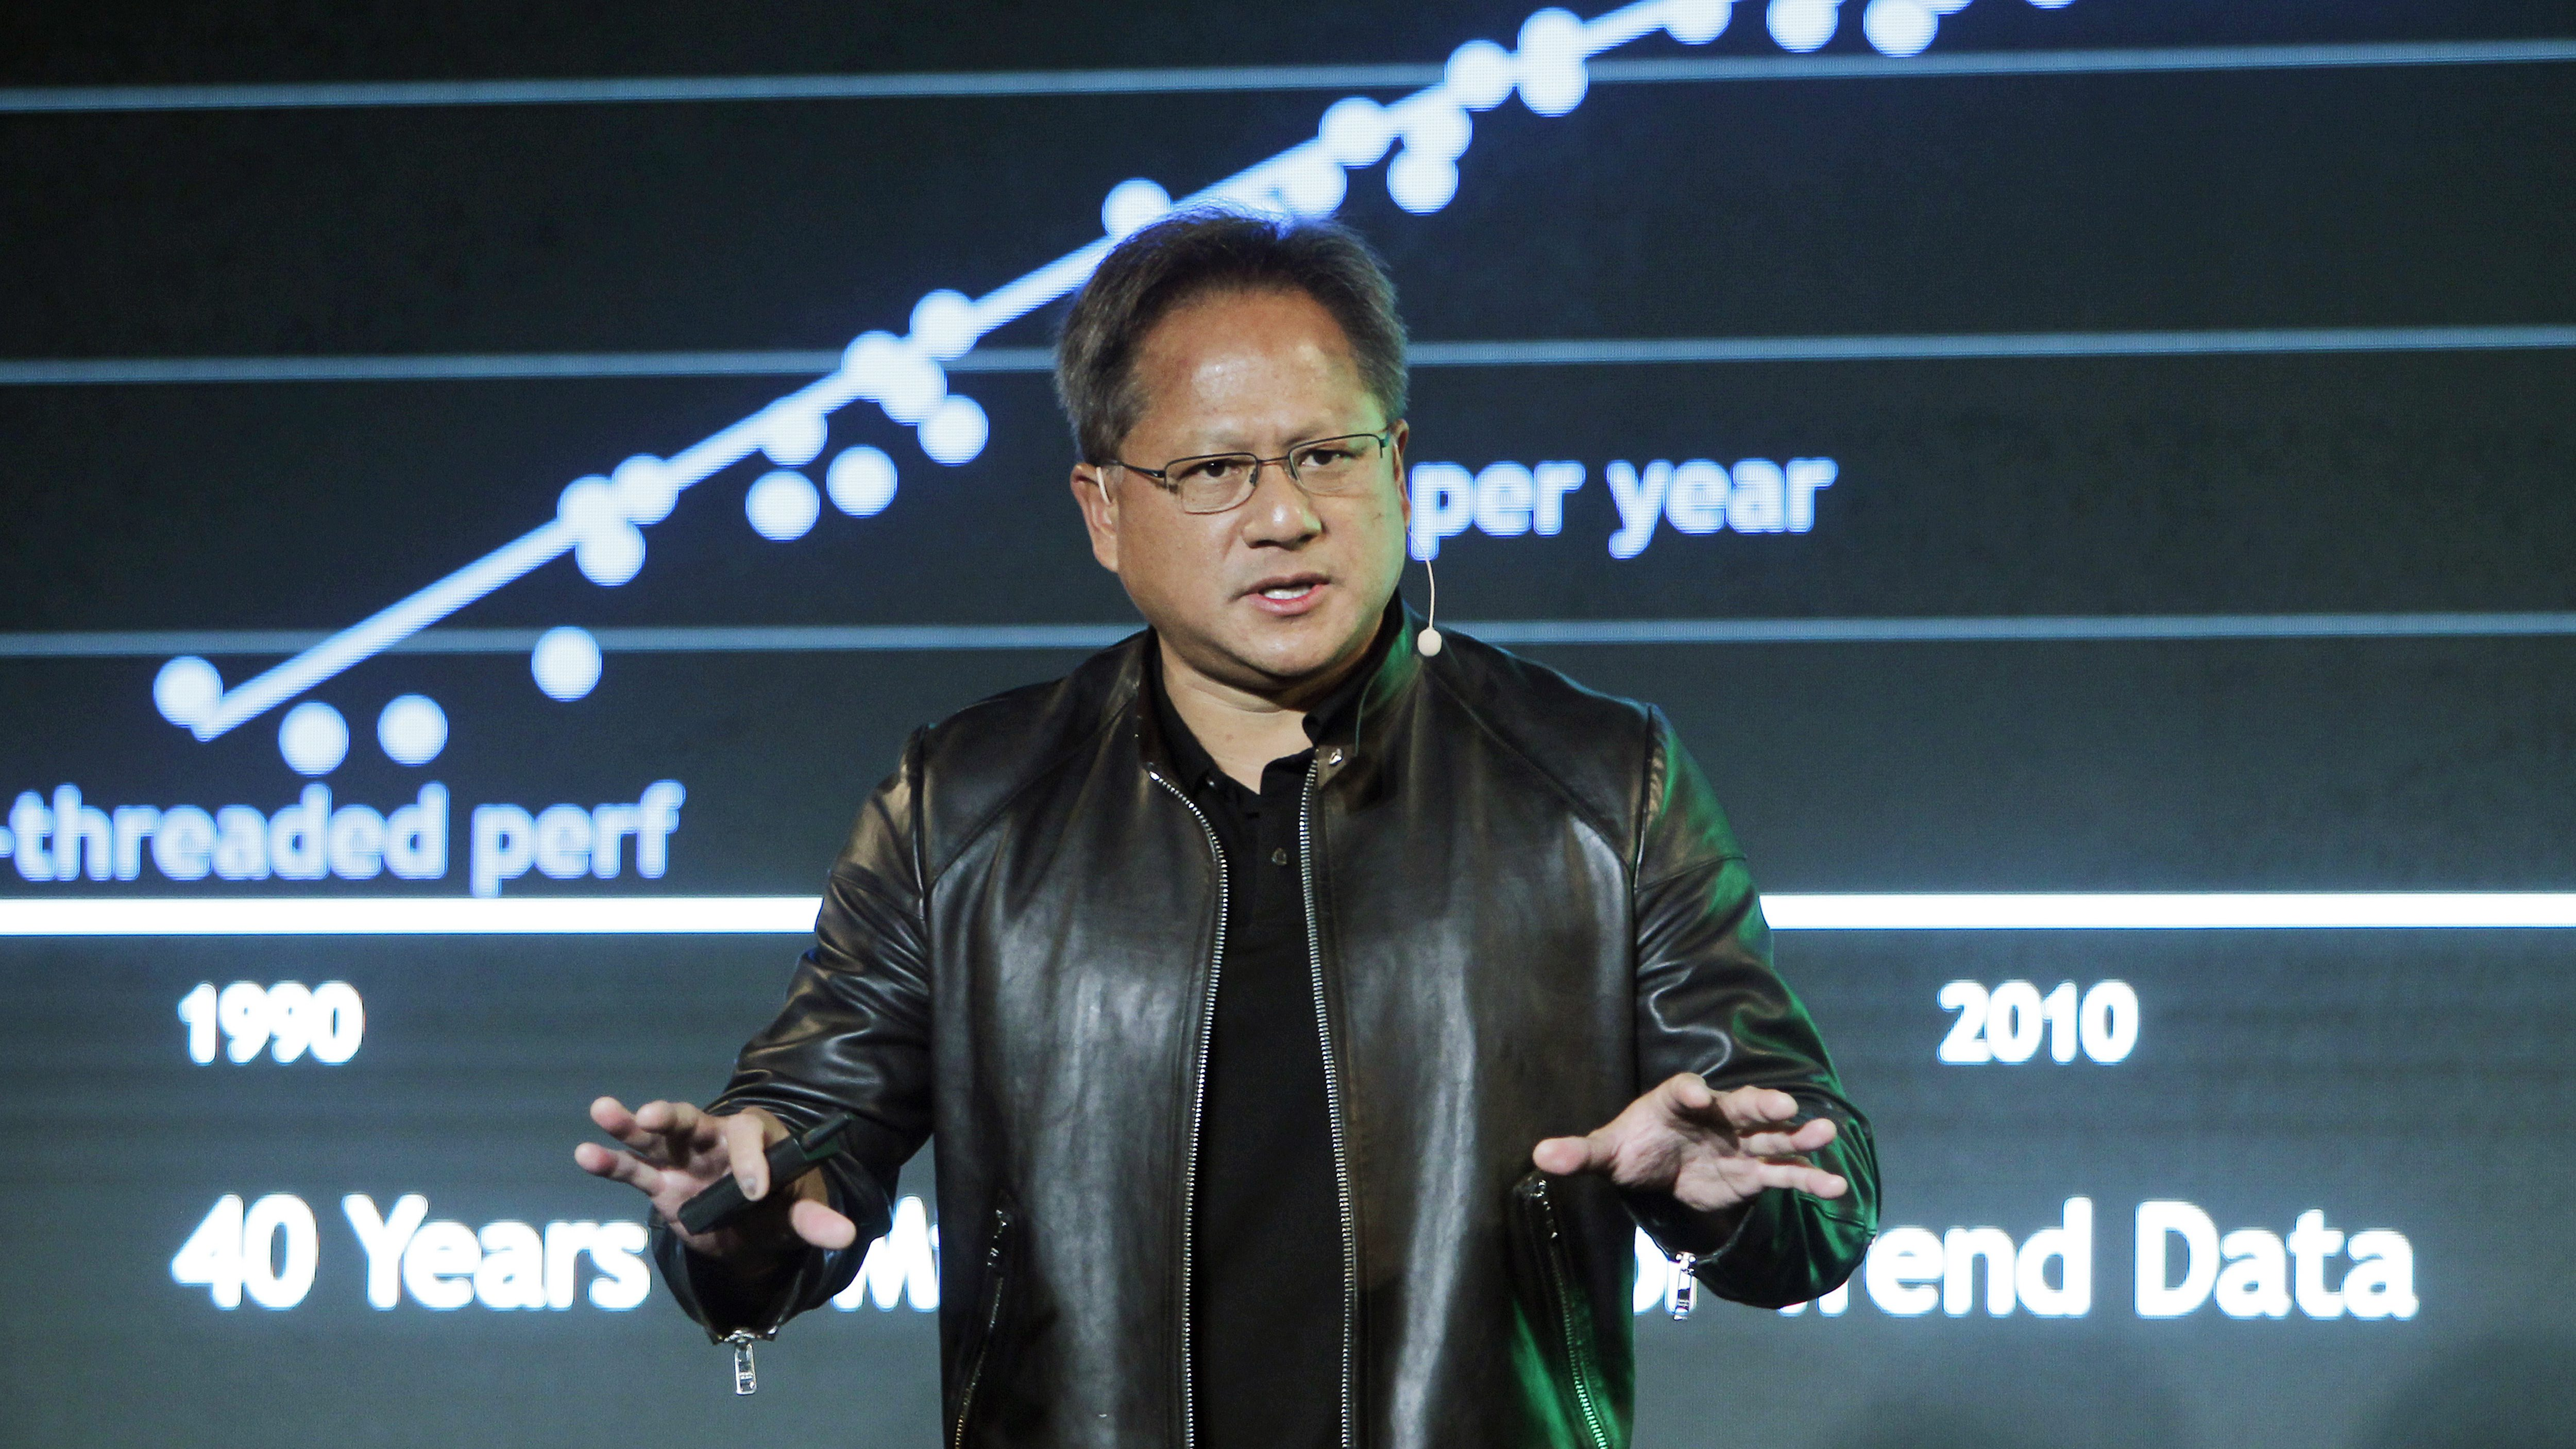 NVIDIA CEO Jen-Hsun Huang delivers a speech about AI and gaming during the Computex Taipei exhibition at the world trade center in Taipei, Taiwan, Tuesday, May 30, 2017. (AP Photo/Chiang Ying-ying)